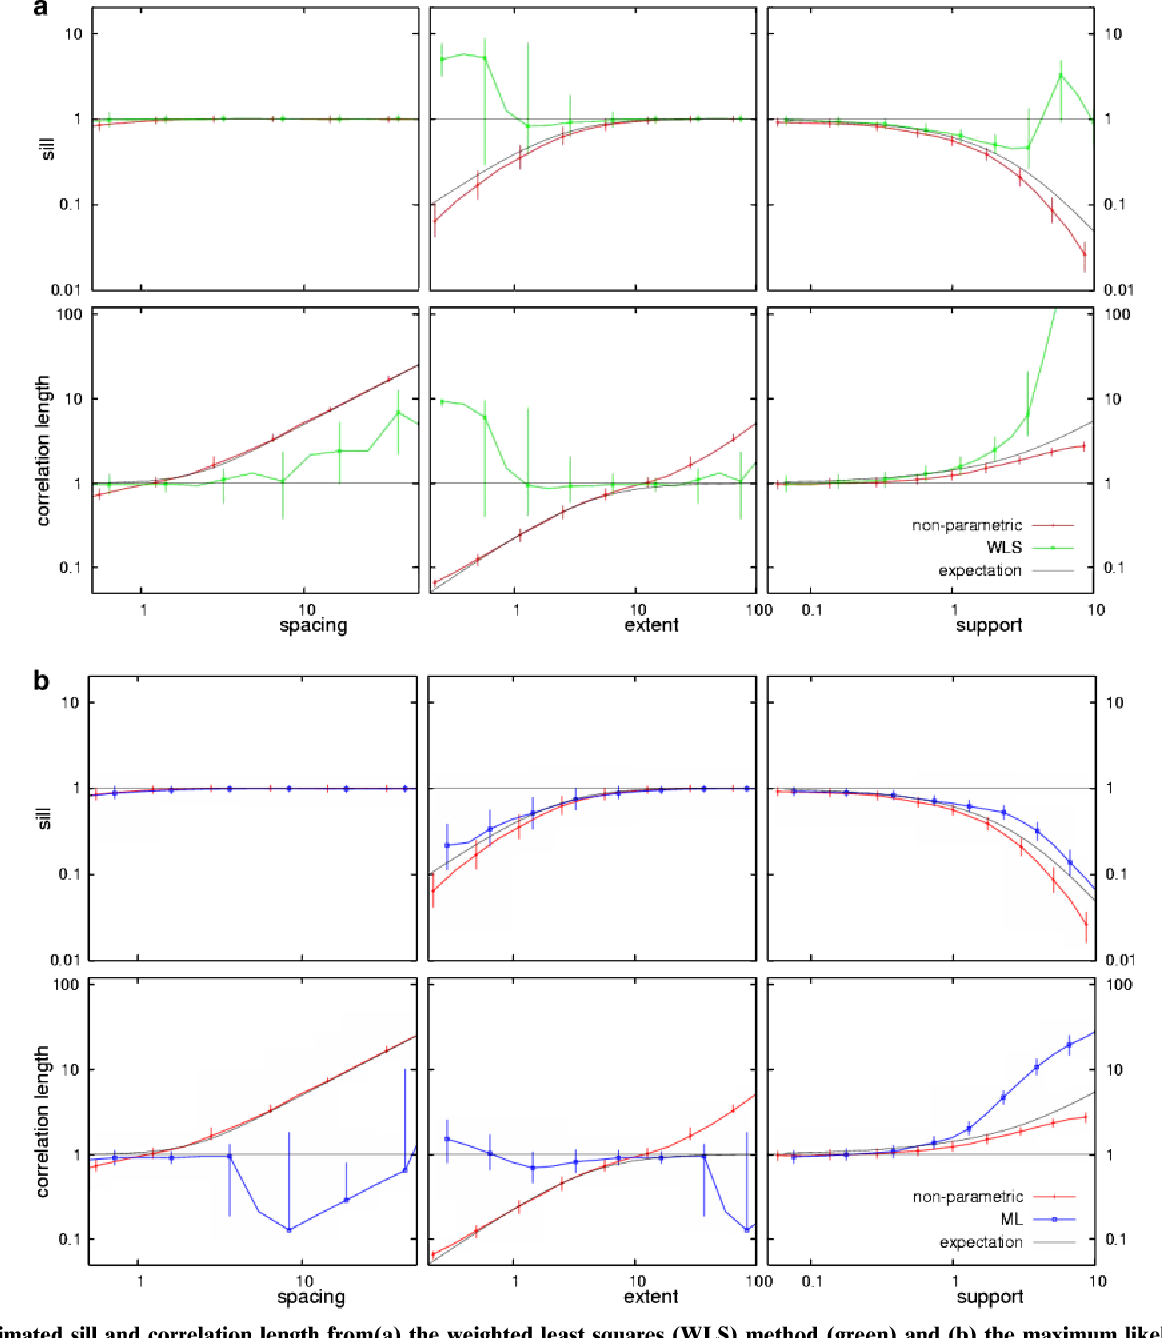 Fig. 12. Estimated sill and correlation length from(a) the weighted least squares (WLS) method (green) and (b) the maximum likelihood (ML) method (blue), together with variance and integral scale (red). The thin black lines correspond to the analytical expectations. All are for the twoparameter model, with 100 gridded samples.